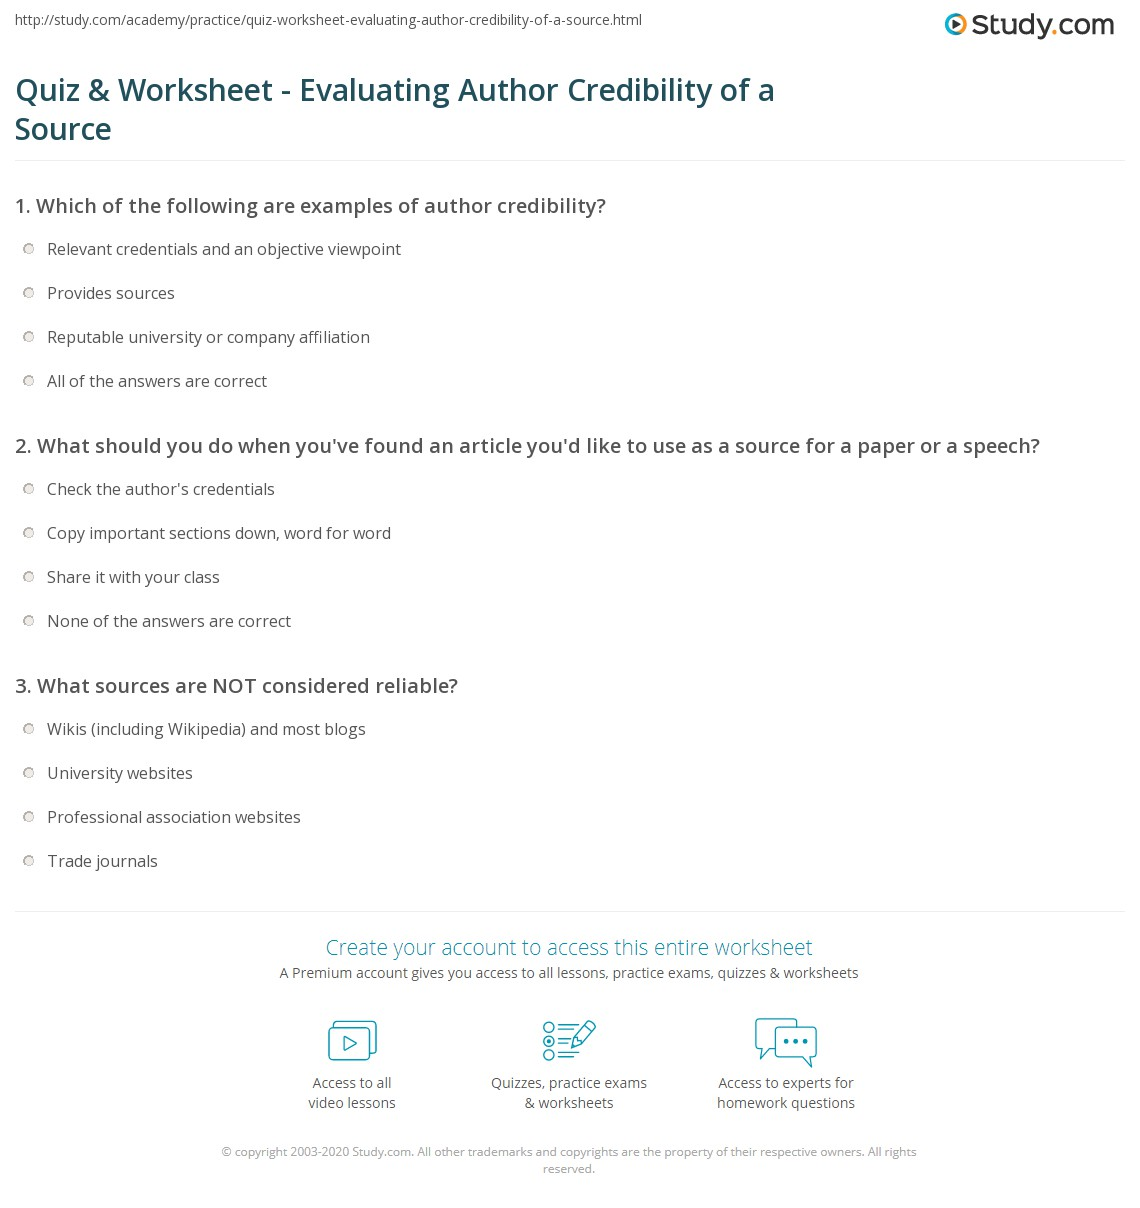 quiz worksheet evaluating author credibility of a source. Black Bedroom Furniture Sets. Home Design Ideas